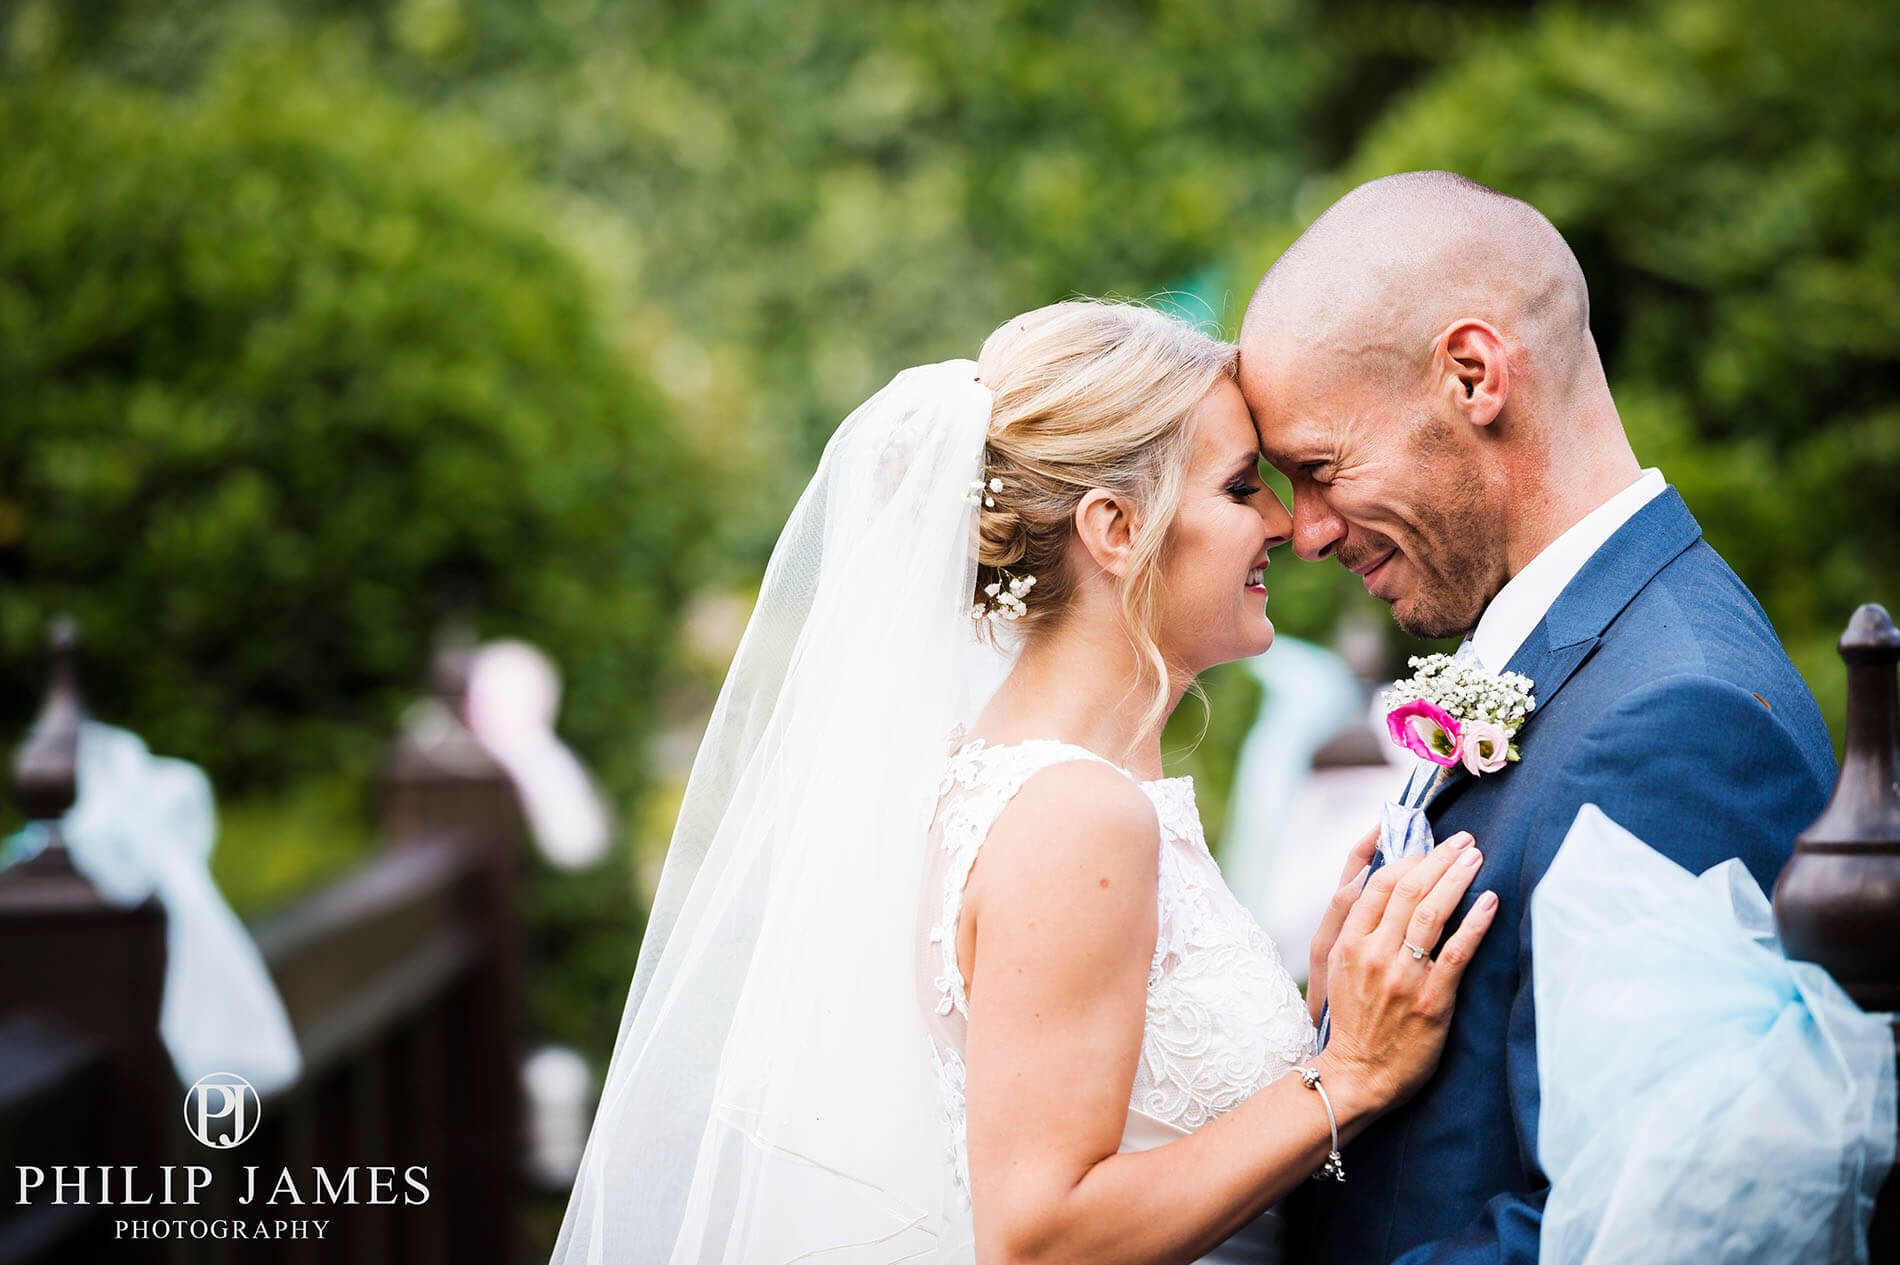 Birmingham Wedding Photographer - Philip James Photography based in Solihull (48 of 68)